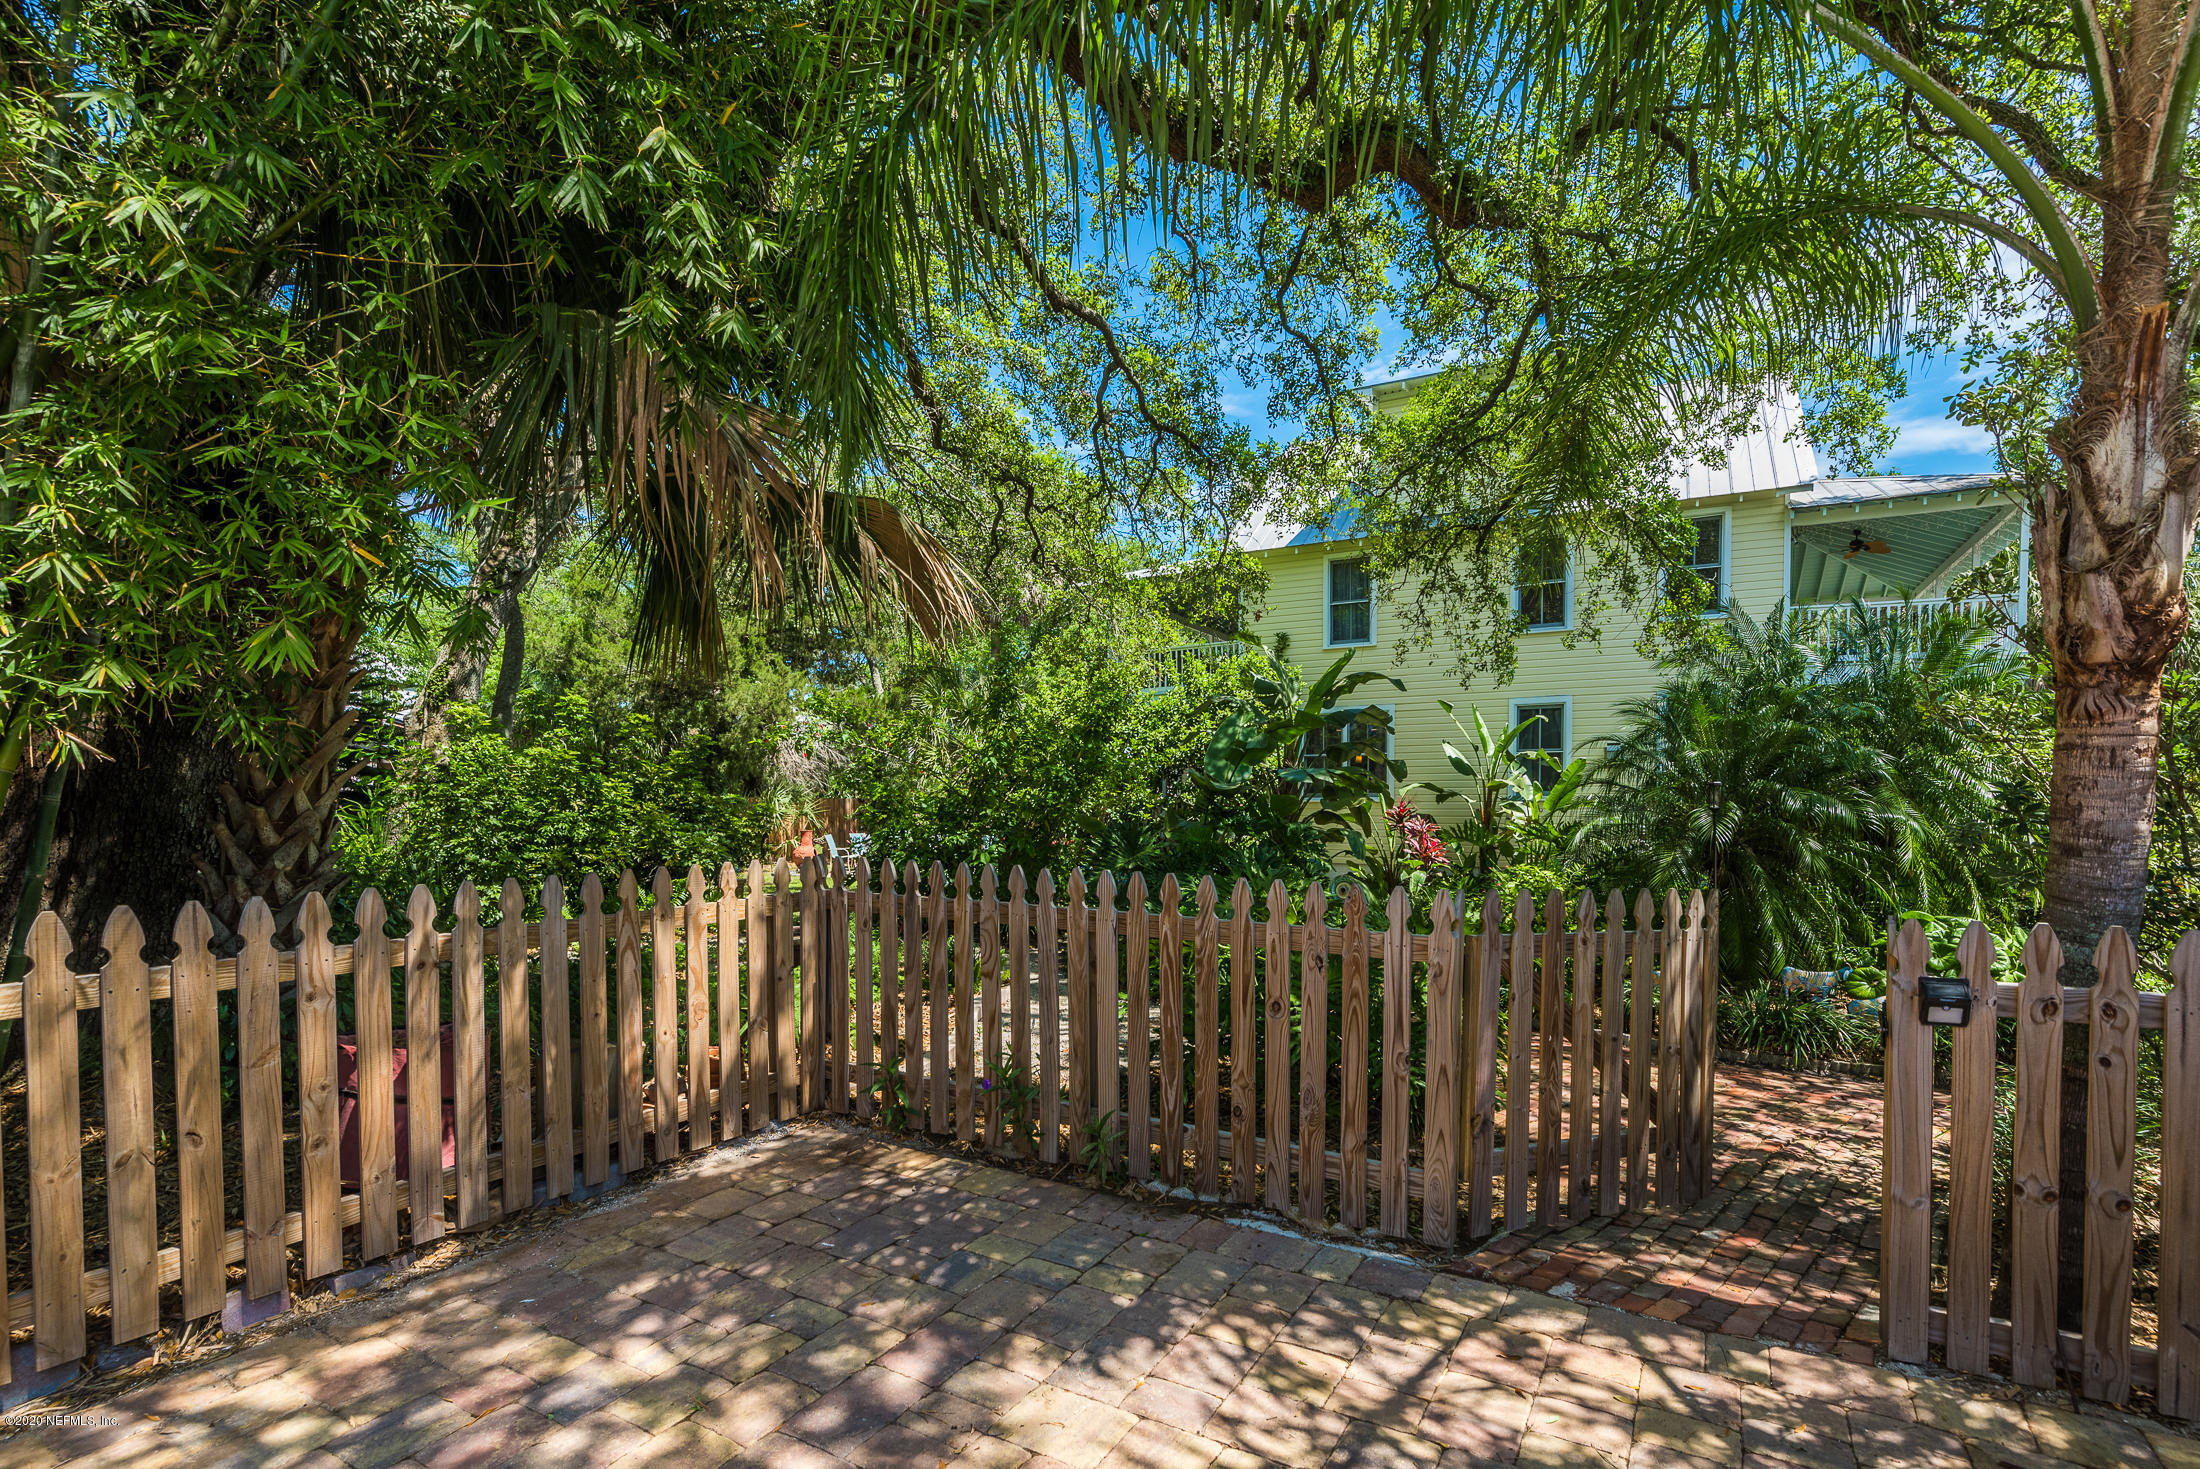 102 SOUTH, ST AUGUSTINE, FLORIDA 32084, 3 Bedrooms Bedrooms, ,3 BathroomsBathrooms,Residential,For sale,SOUTH,1049955